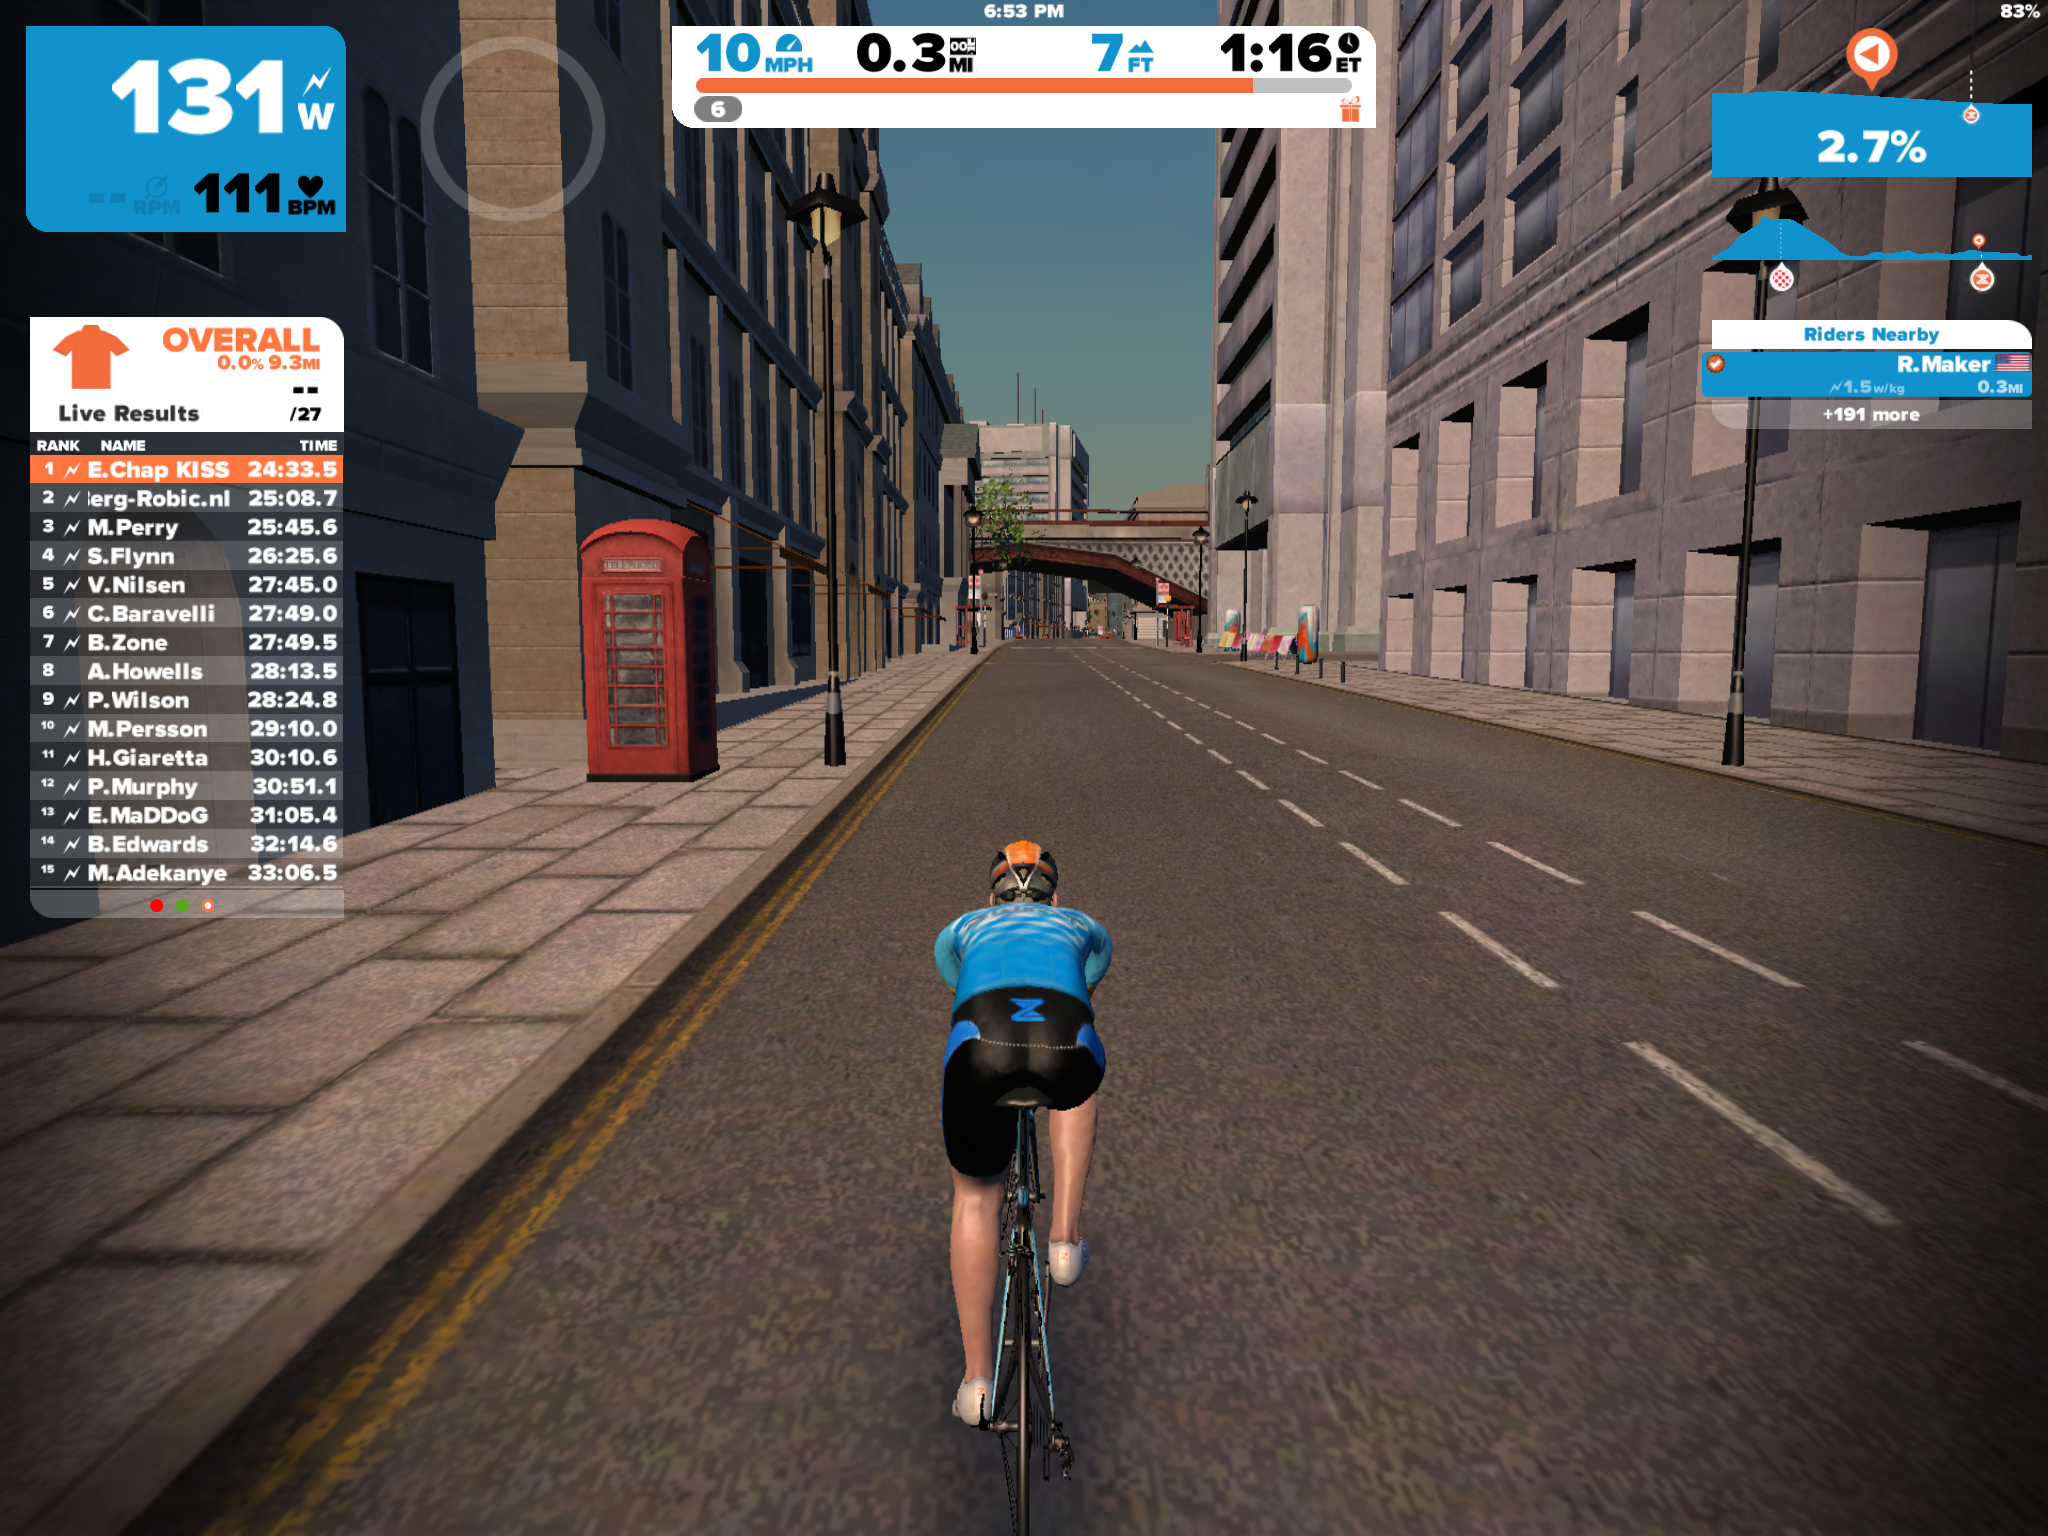 First Look: Zwift rolls out iOS version of platform | DC